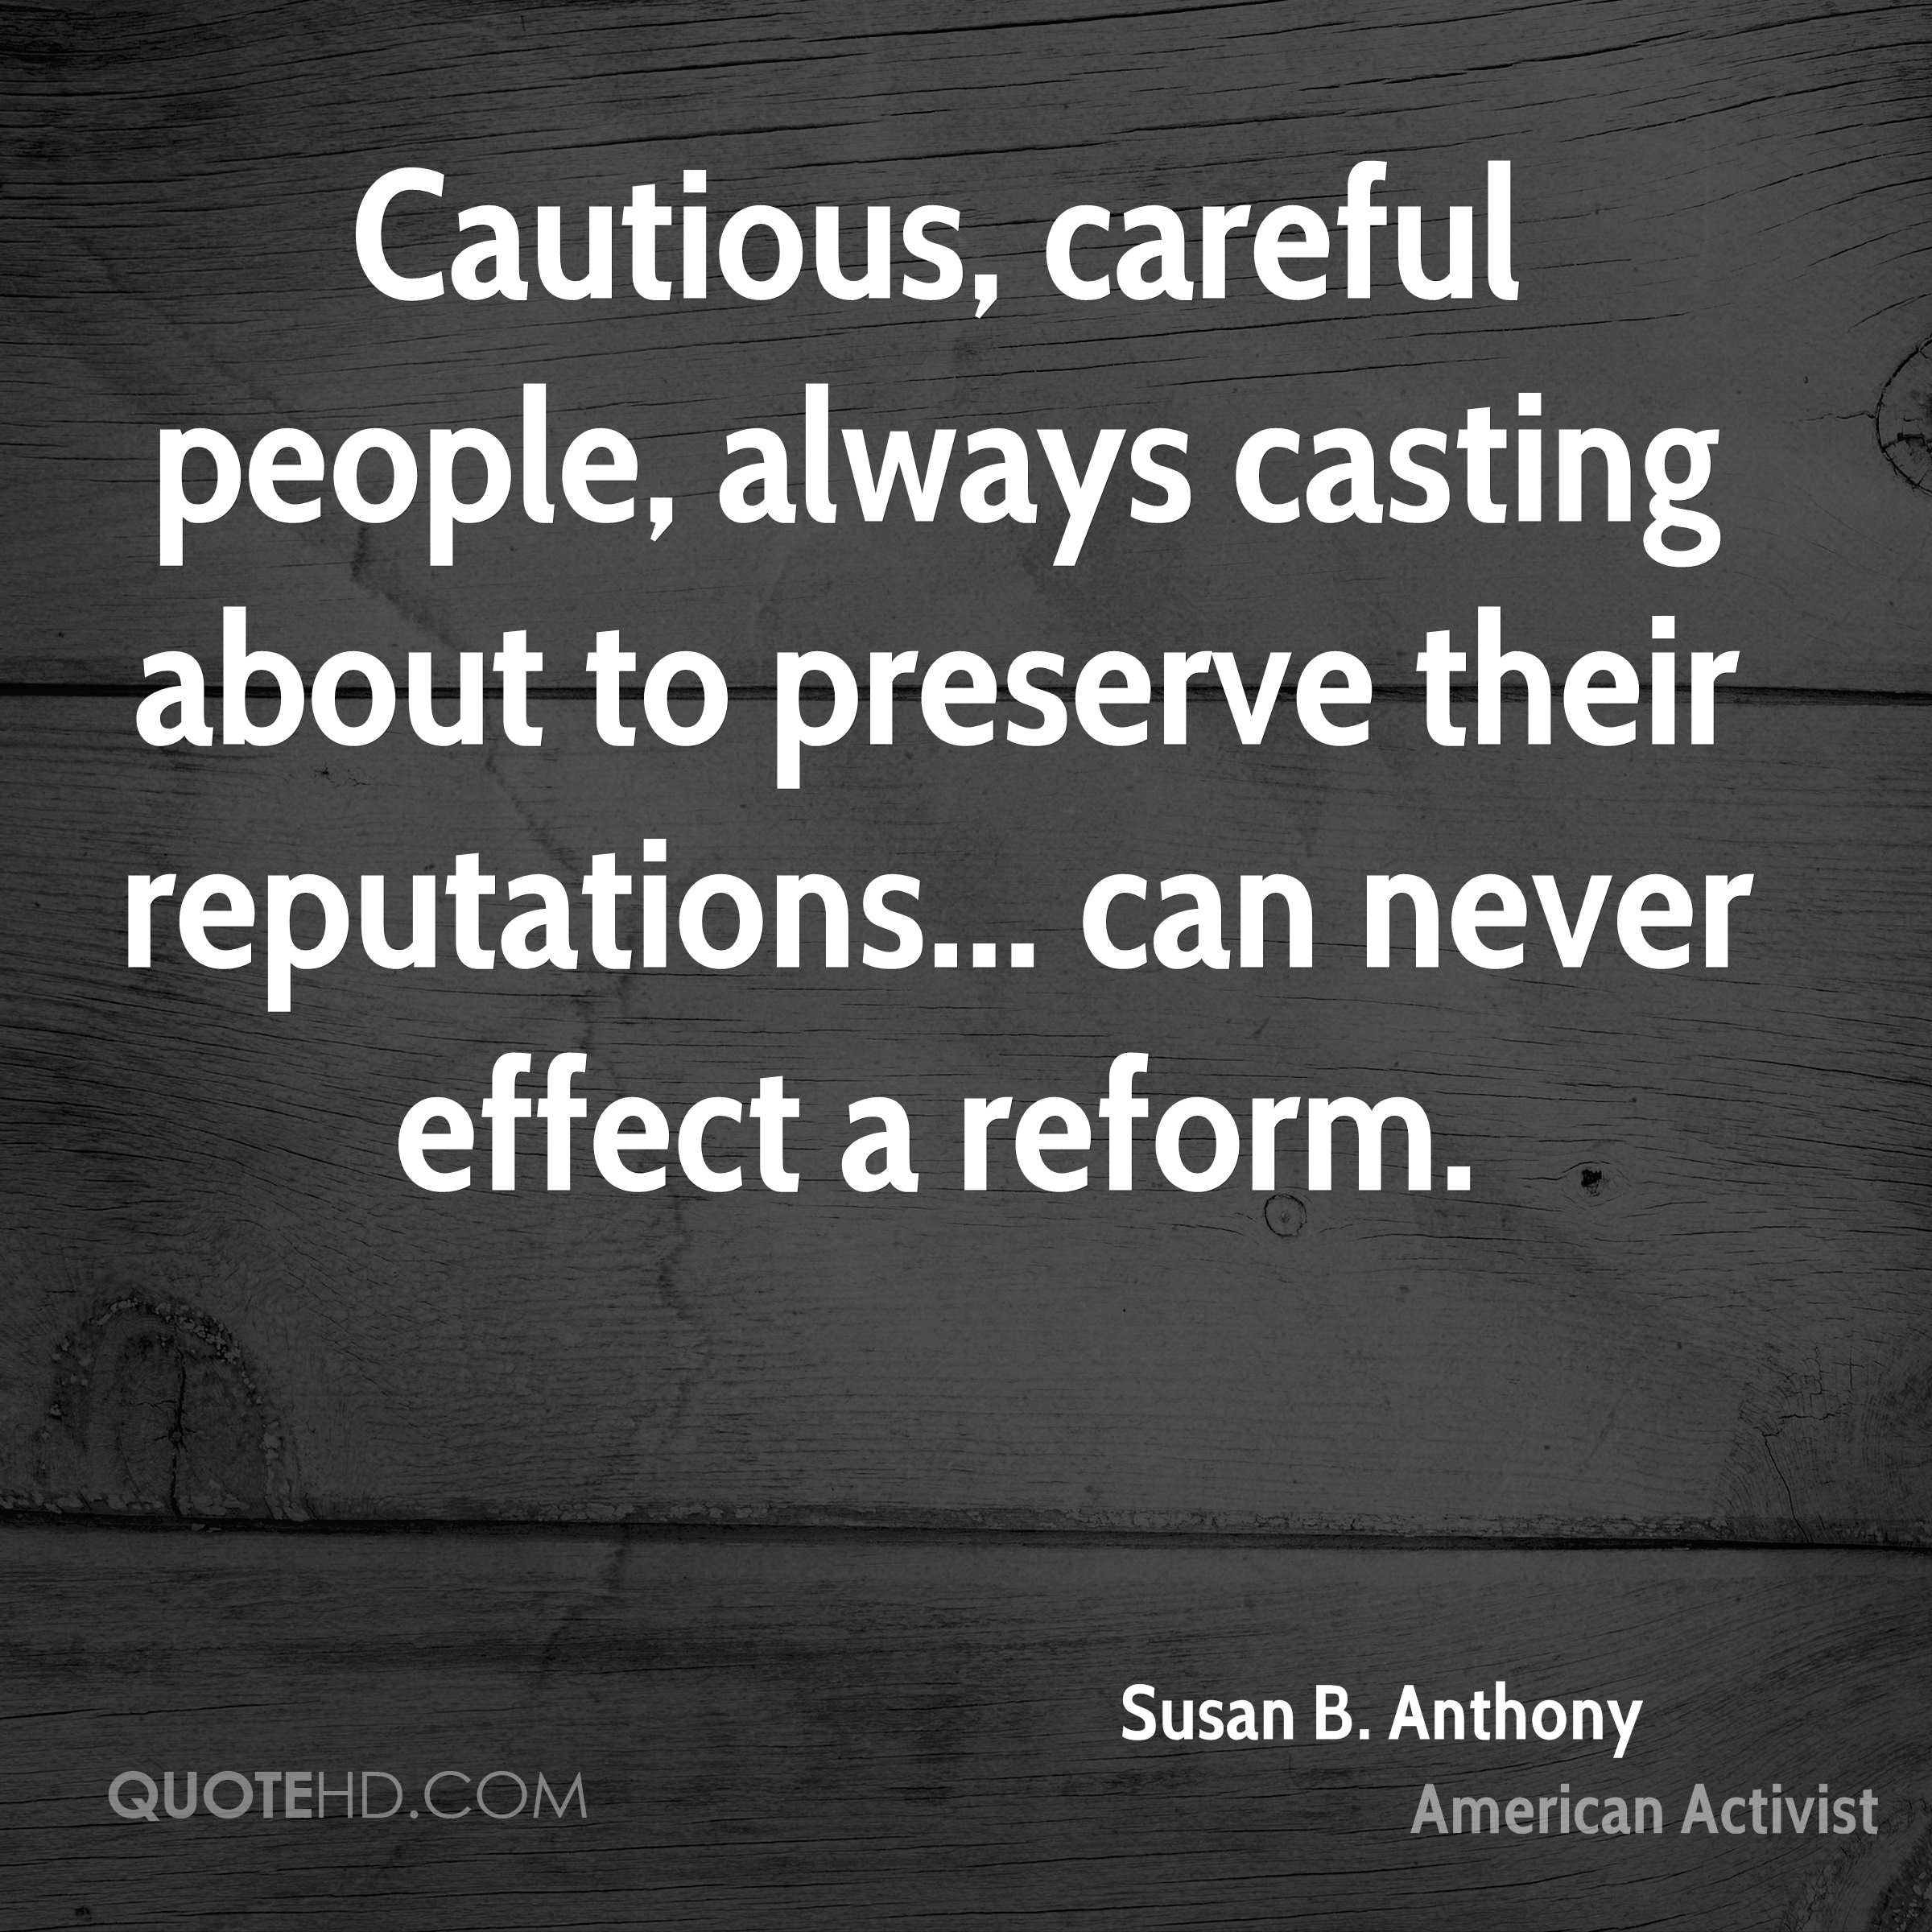 Cautious, careful people, always casting about to preserve their reputations... can never effect a reform.